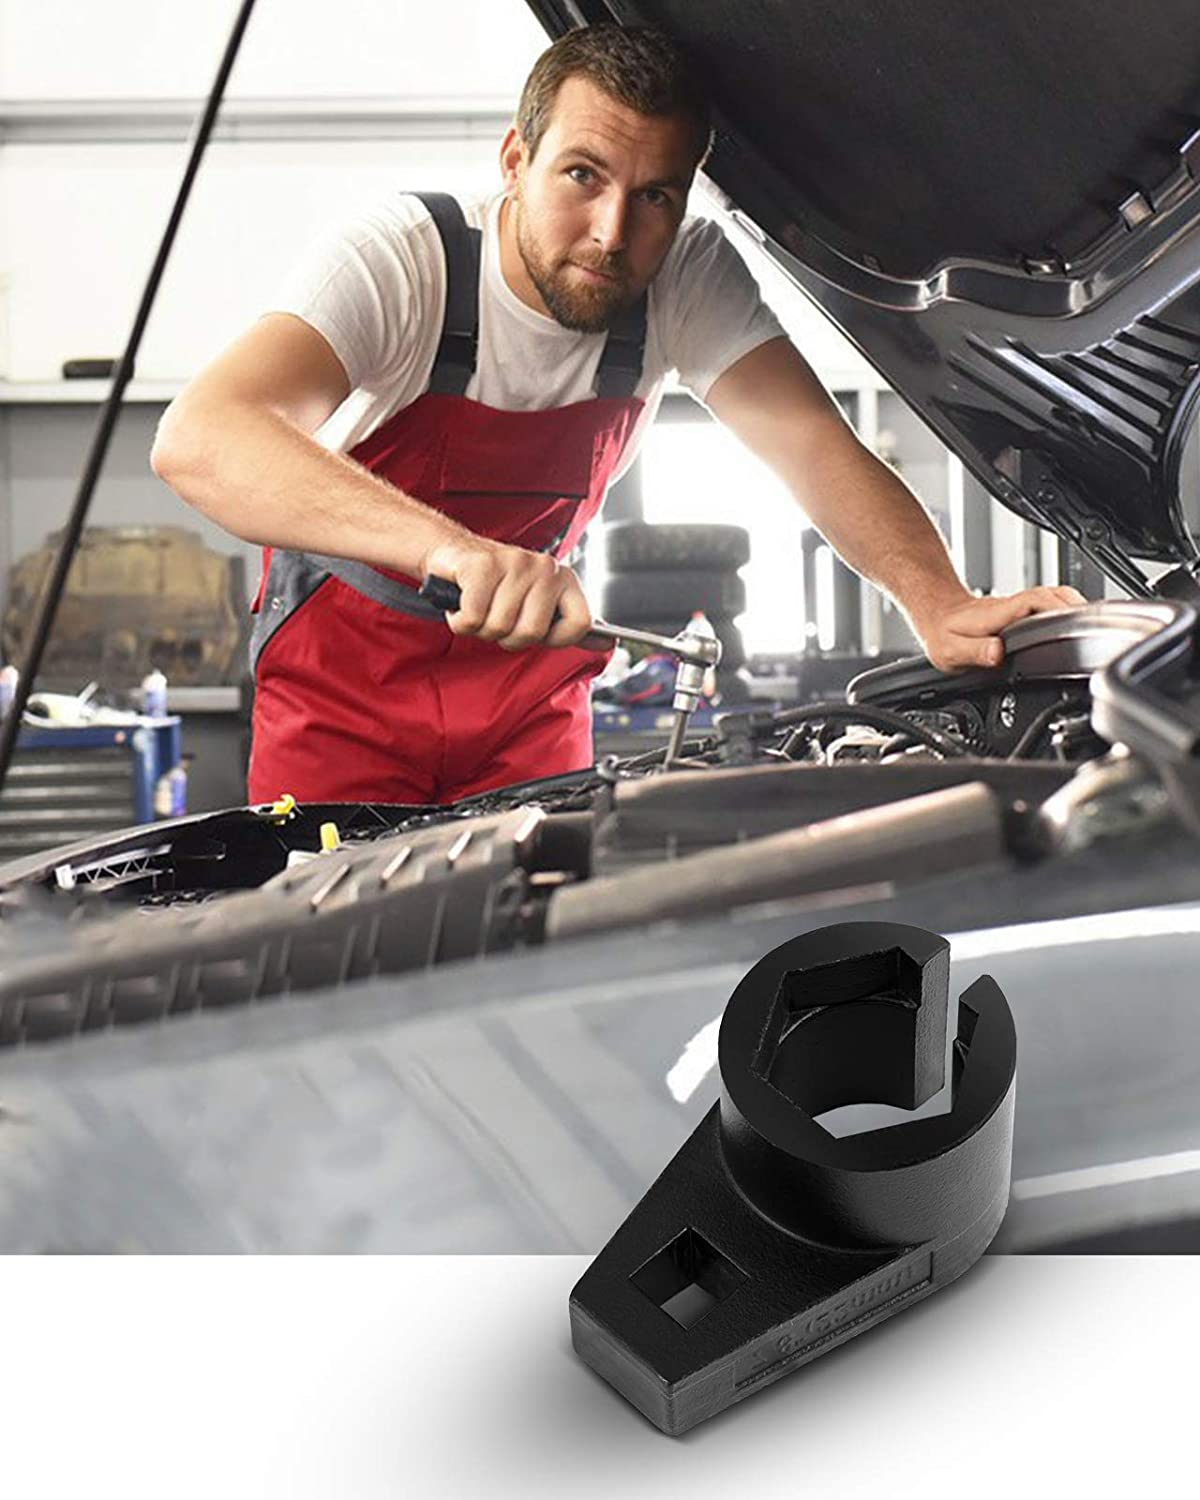 All Vehicle O2 Removal and Installation Preventing Damage to Wires Wire Gate Accesses Sensor from the Side 7//8-Inch KAX 3//8-Inch Drive Offset Oxygen Sensor Socket 22 mm